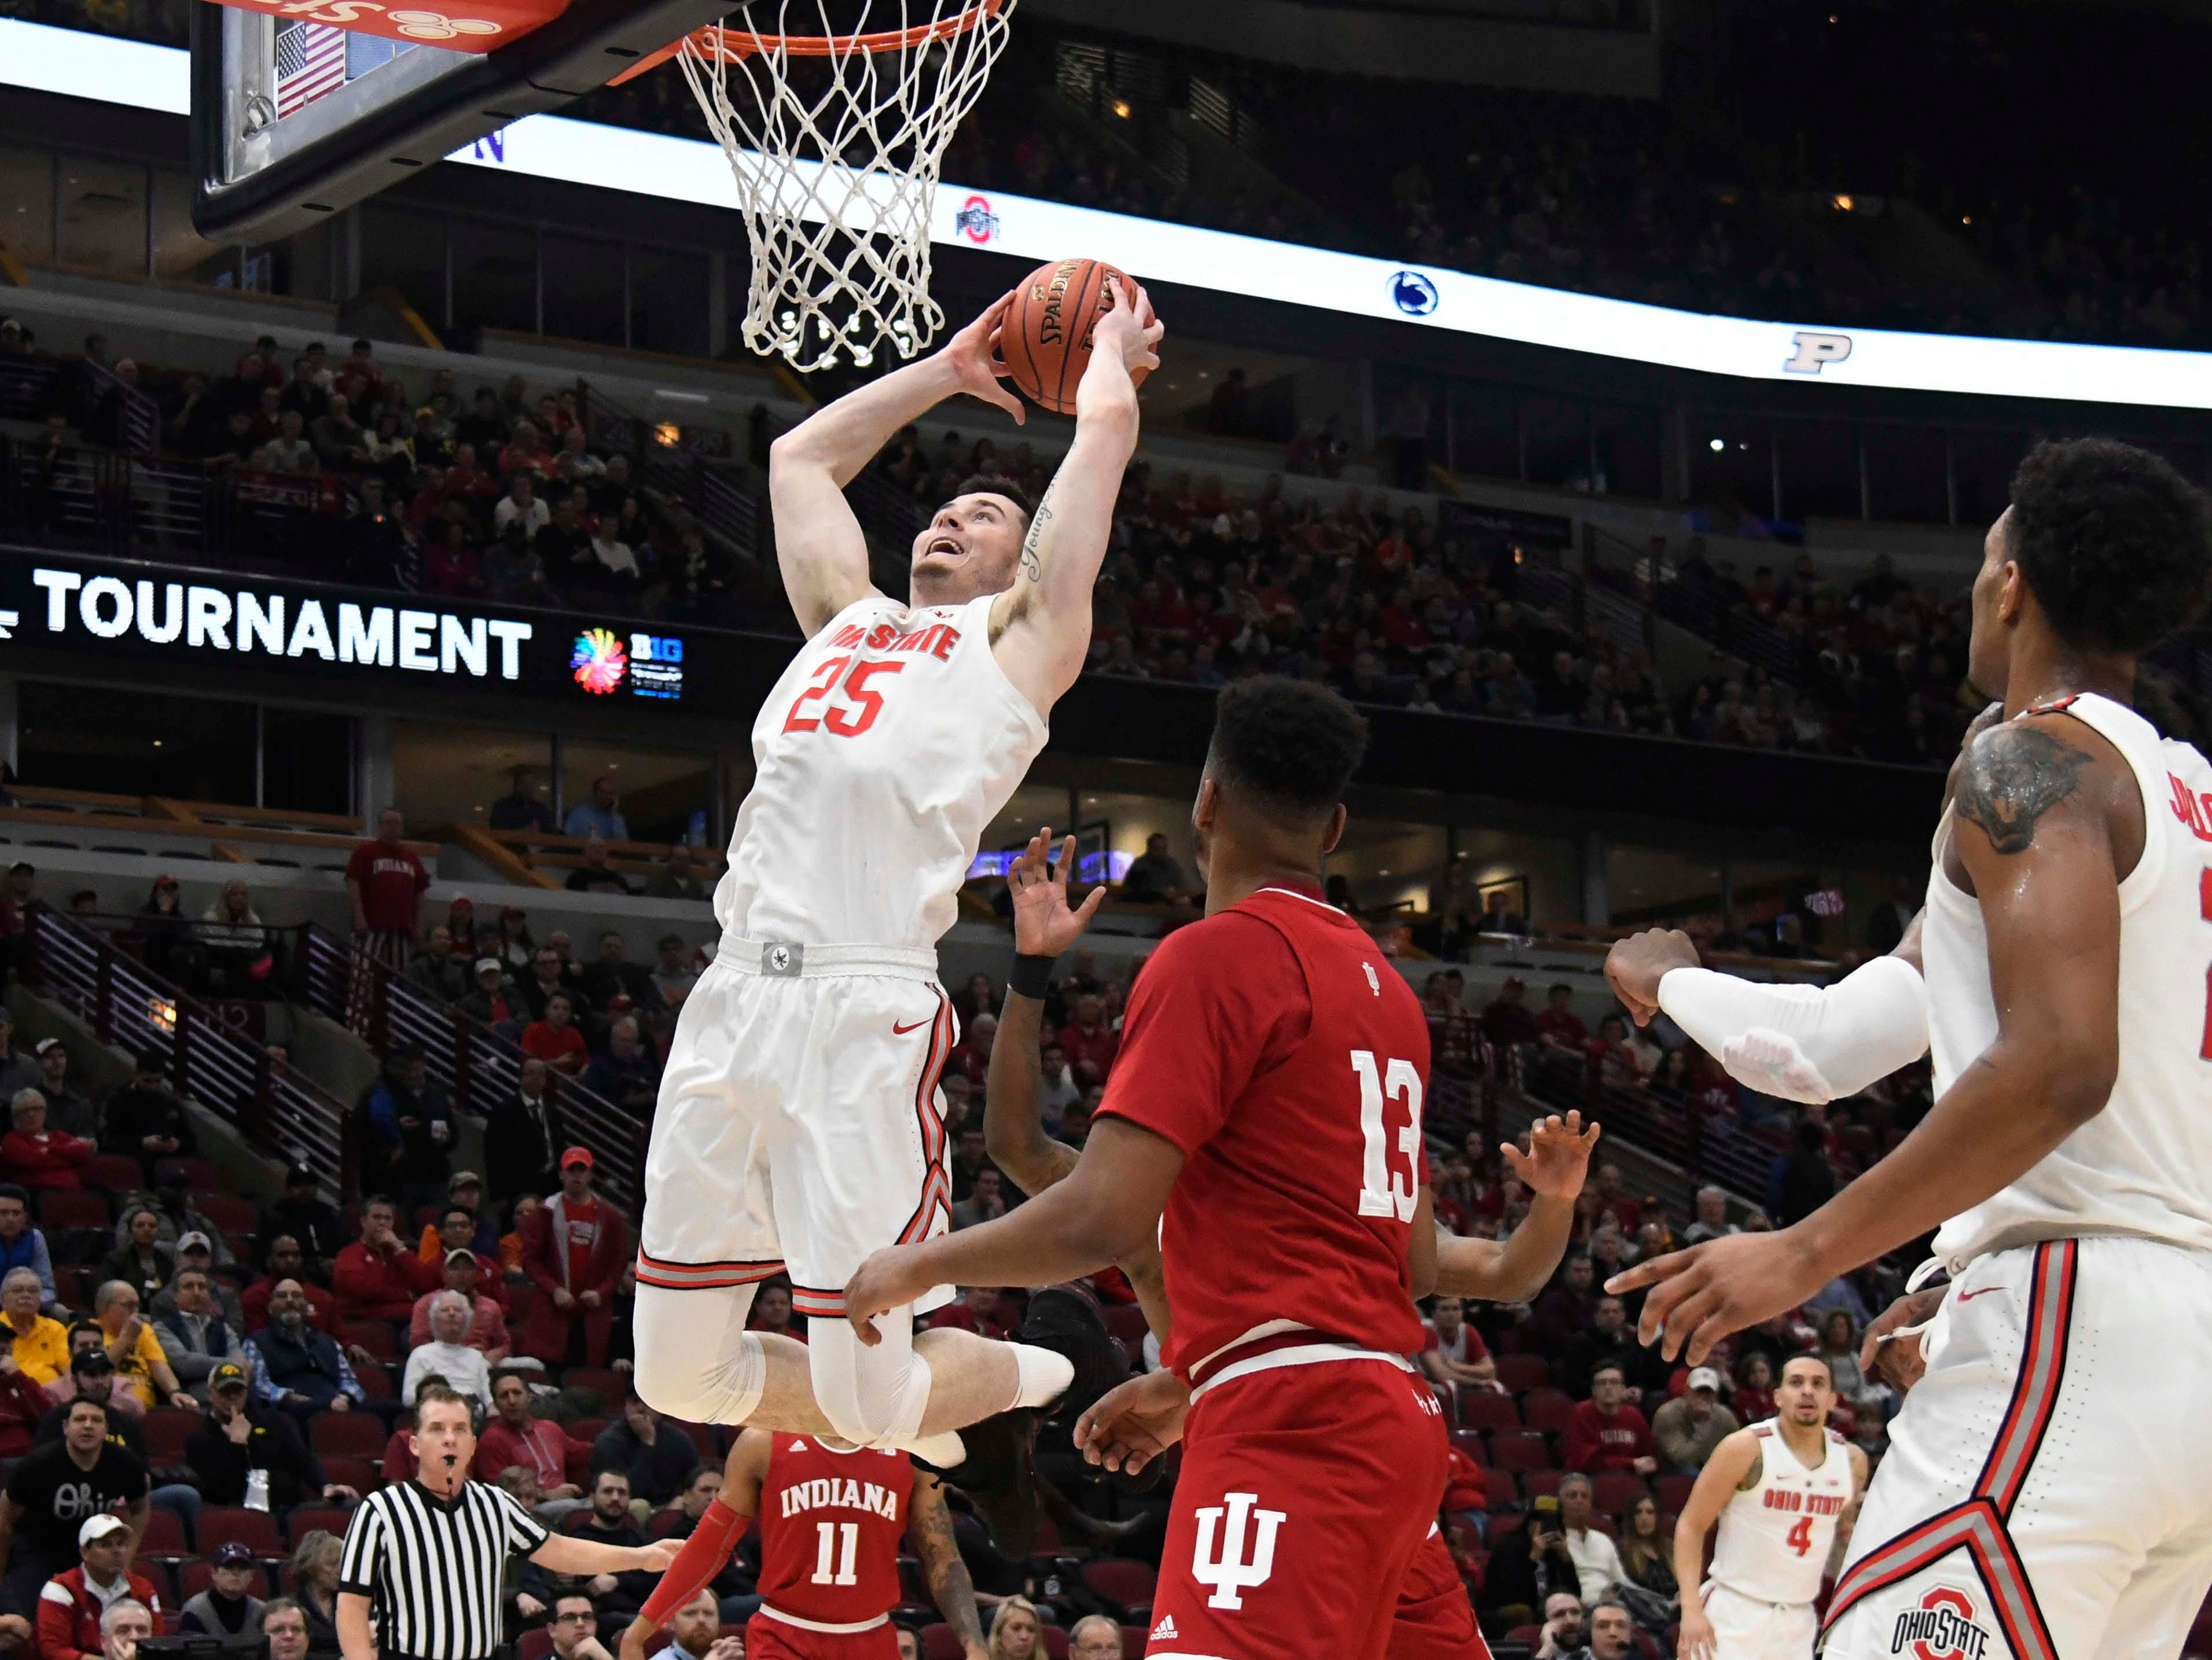 Mar 14, 2019; Chicago, IL, USA; Ohio State Buckeyes forward Kyle Young (25) goes up for a shot against the Indiana Hoosiers during the first half in the Big Ten conference tournament at United Center. Mandatory Credit: David Banks-USA TODAY Sports